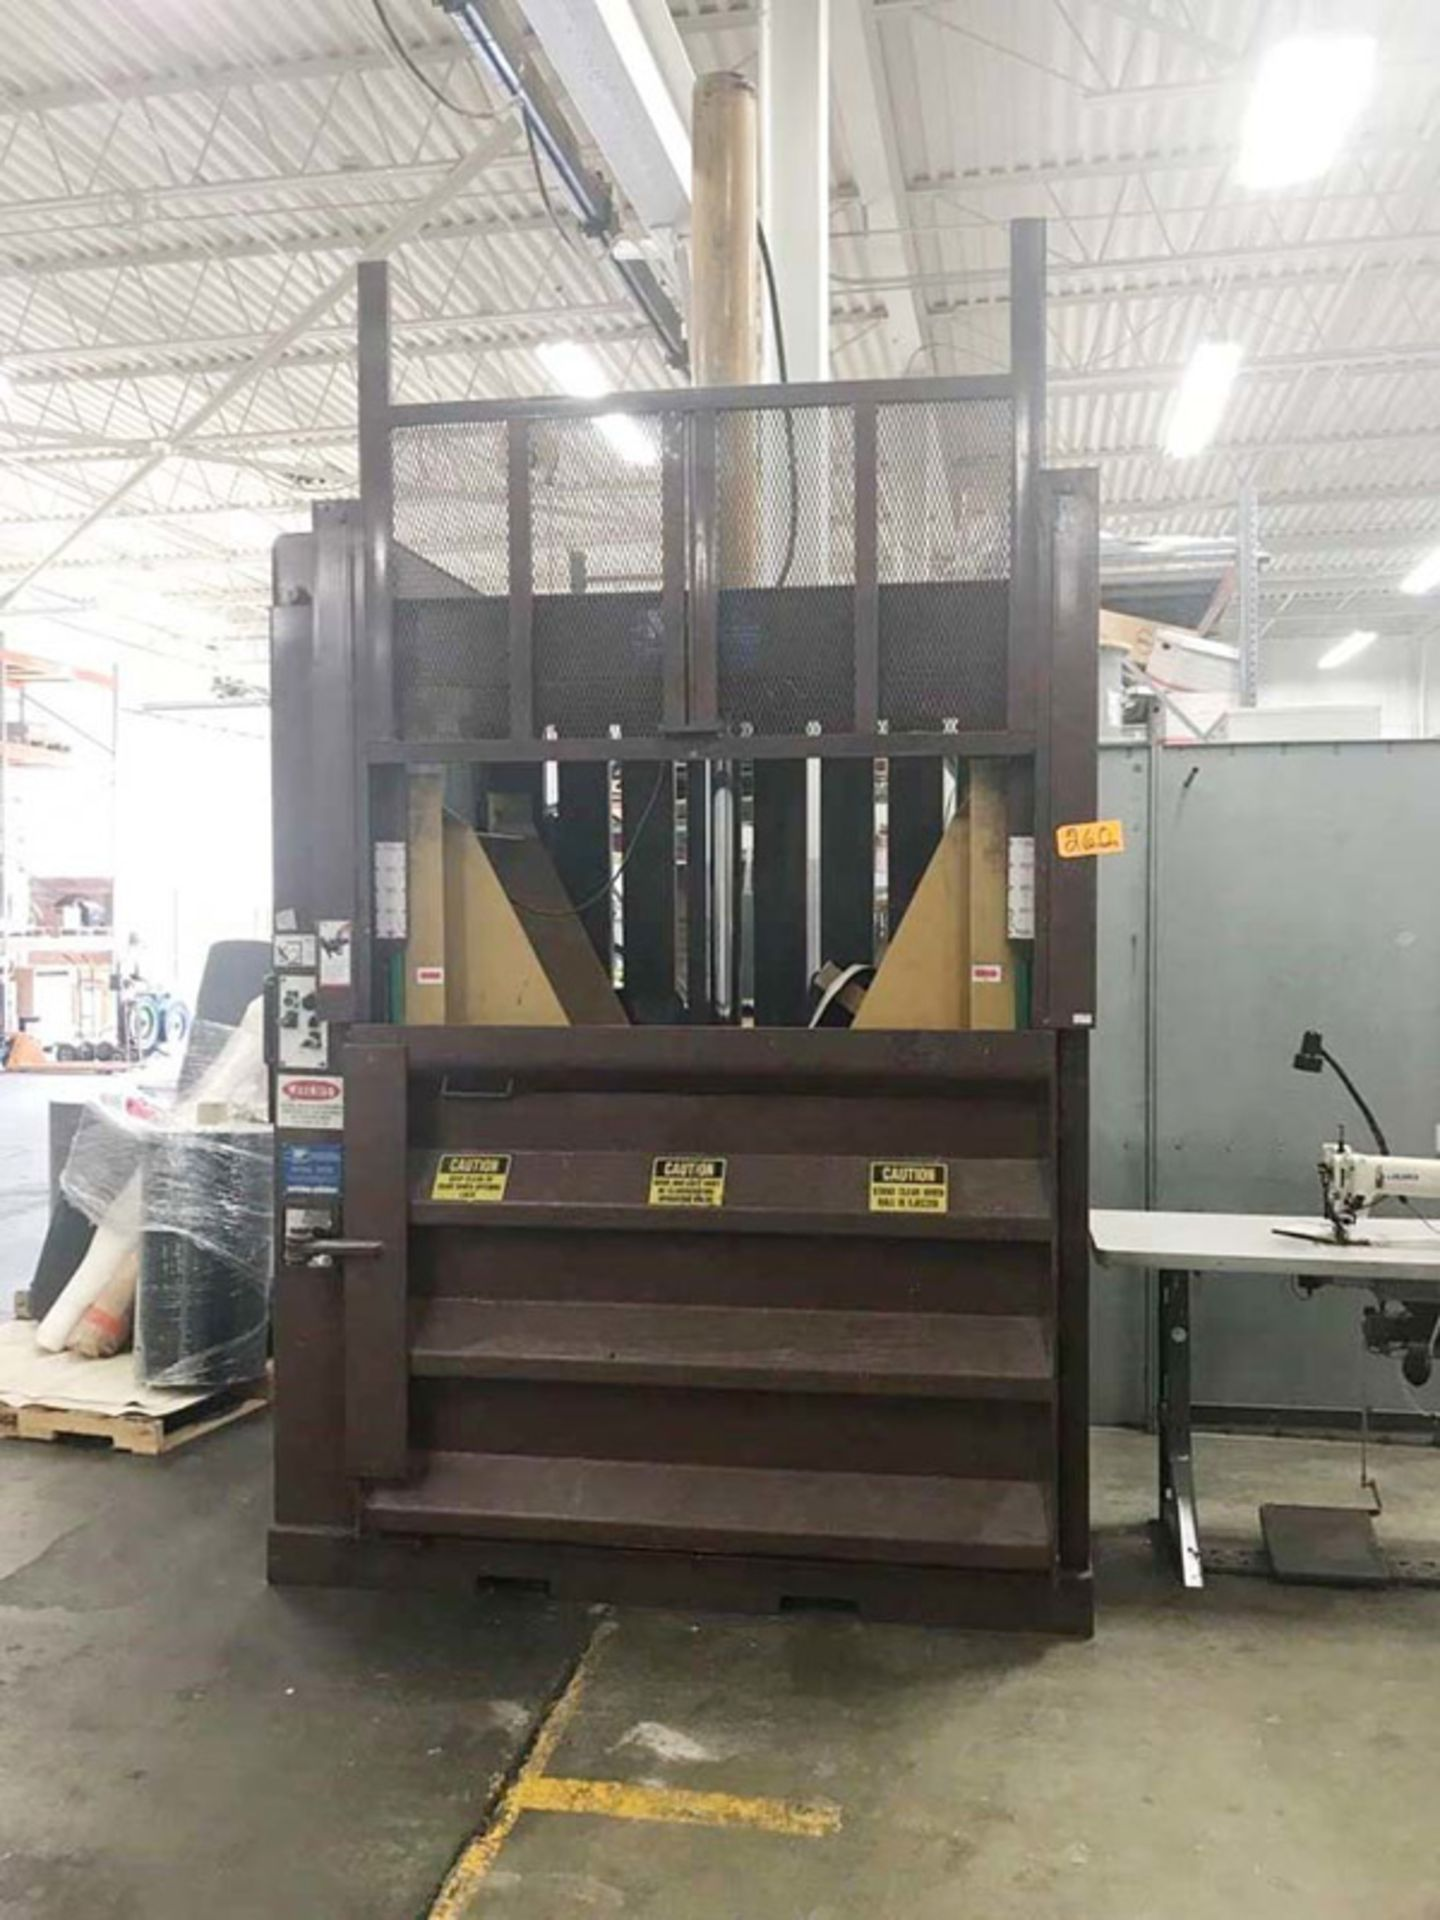 "Lot 6 - SP Industries Hydraulic Vertical Baler | 60"" x 30"" x 48"", Mdl: VB60E, S/N: 95060646 - 8758P"